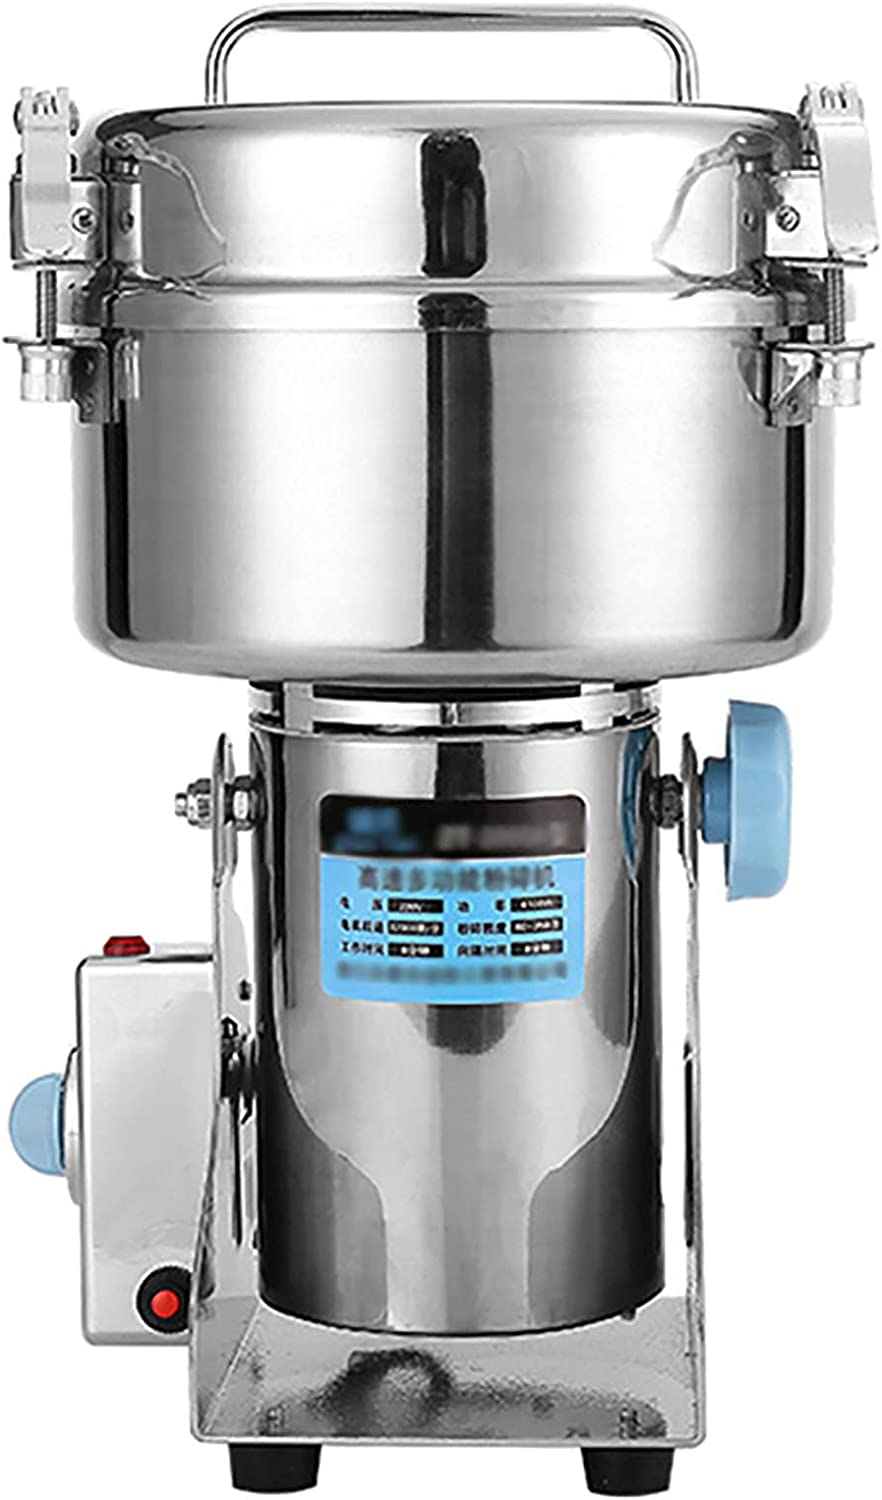 2000g Electric Grain Grinder Mill Topics on TV Spice Herb Com High-Speed Louisville-Jefferson County Mall